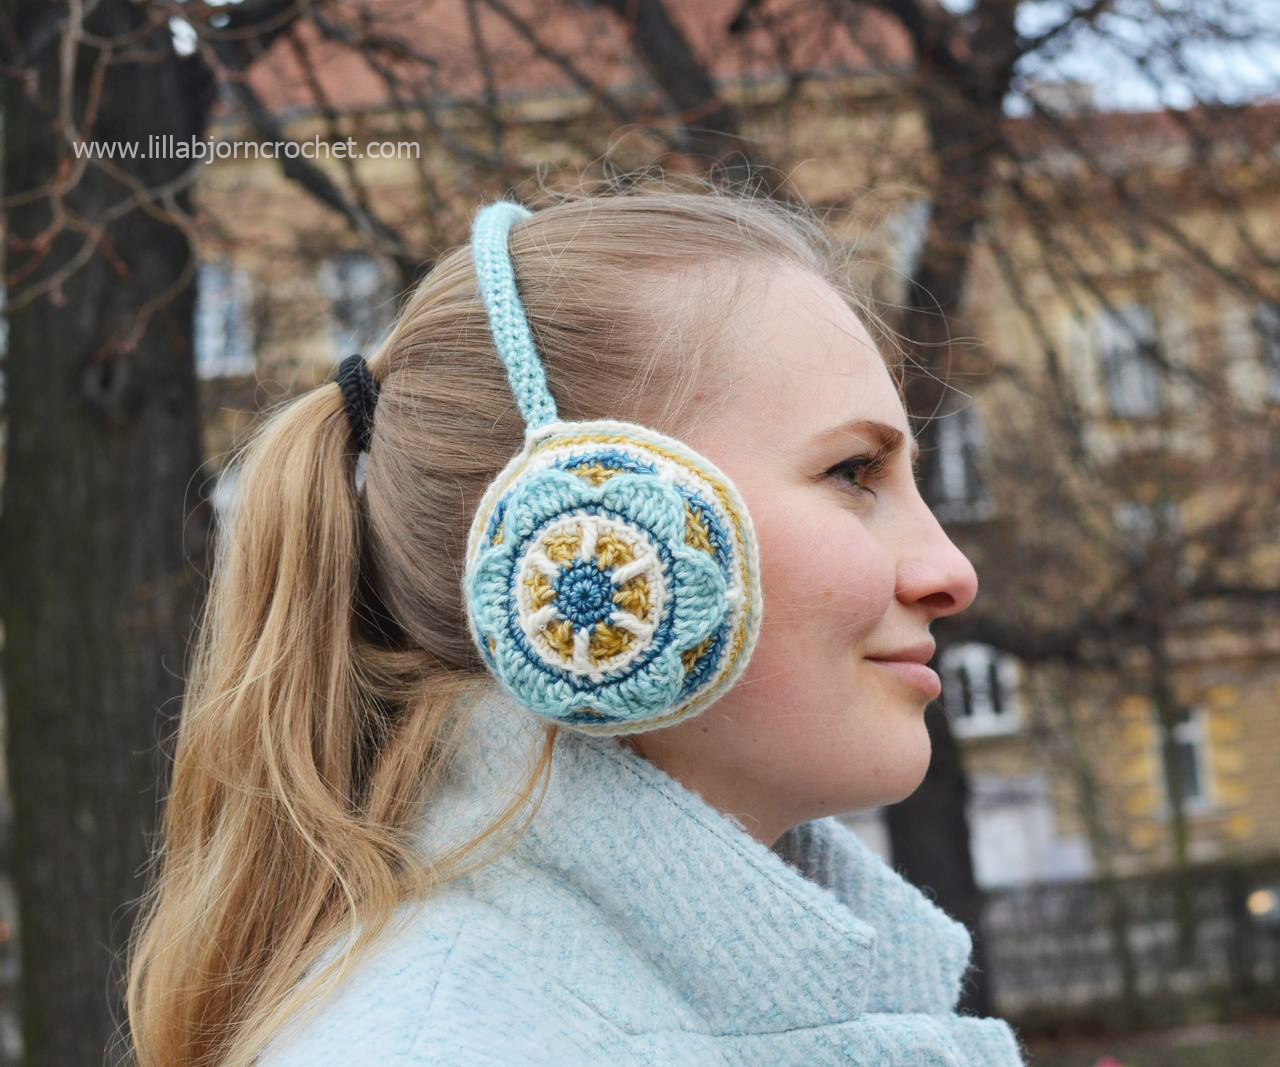 Crocheted ear muffs by Lilla Bjorn Crochet